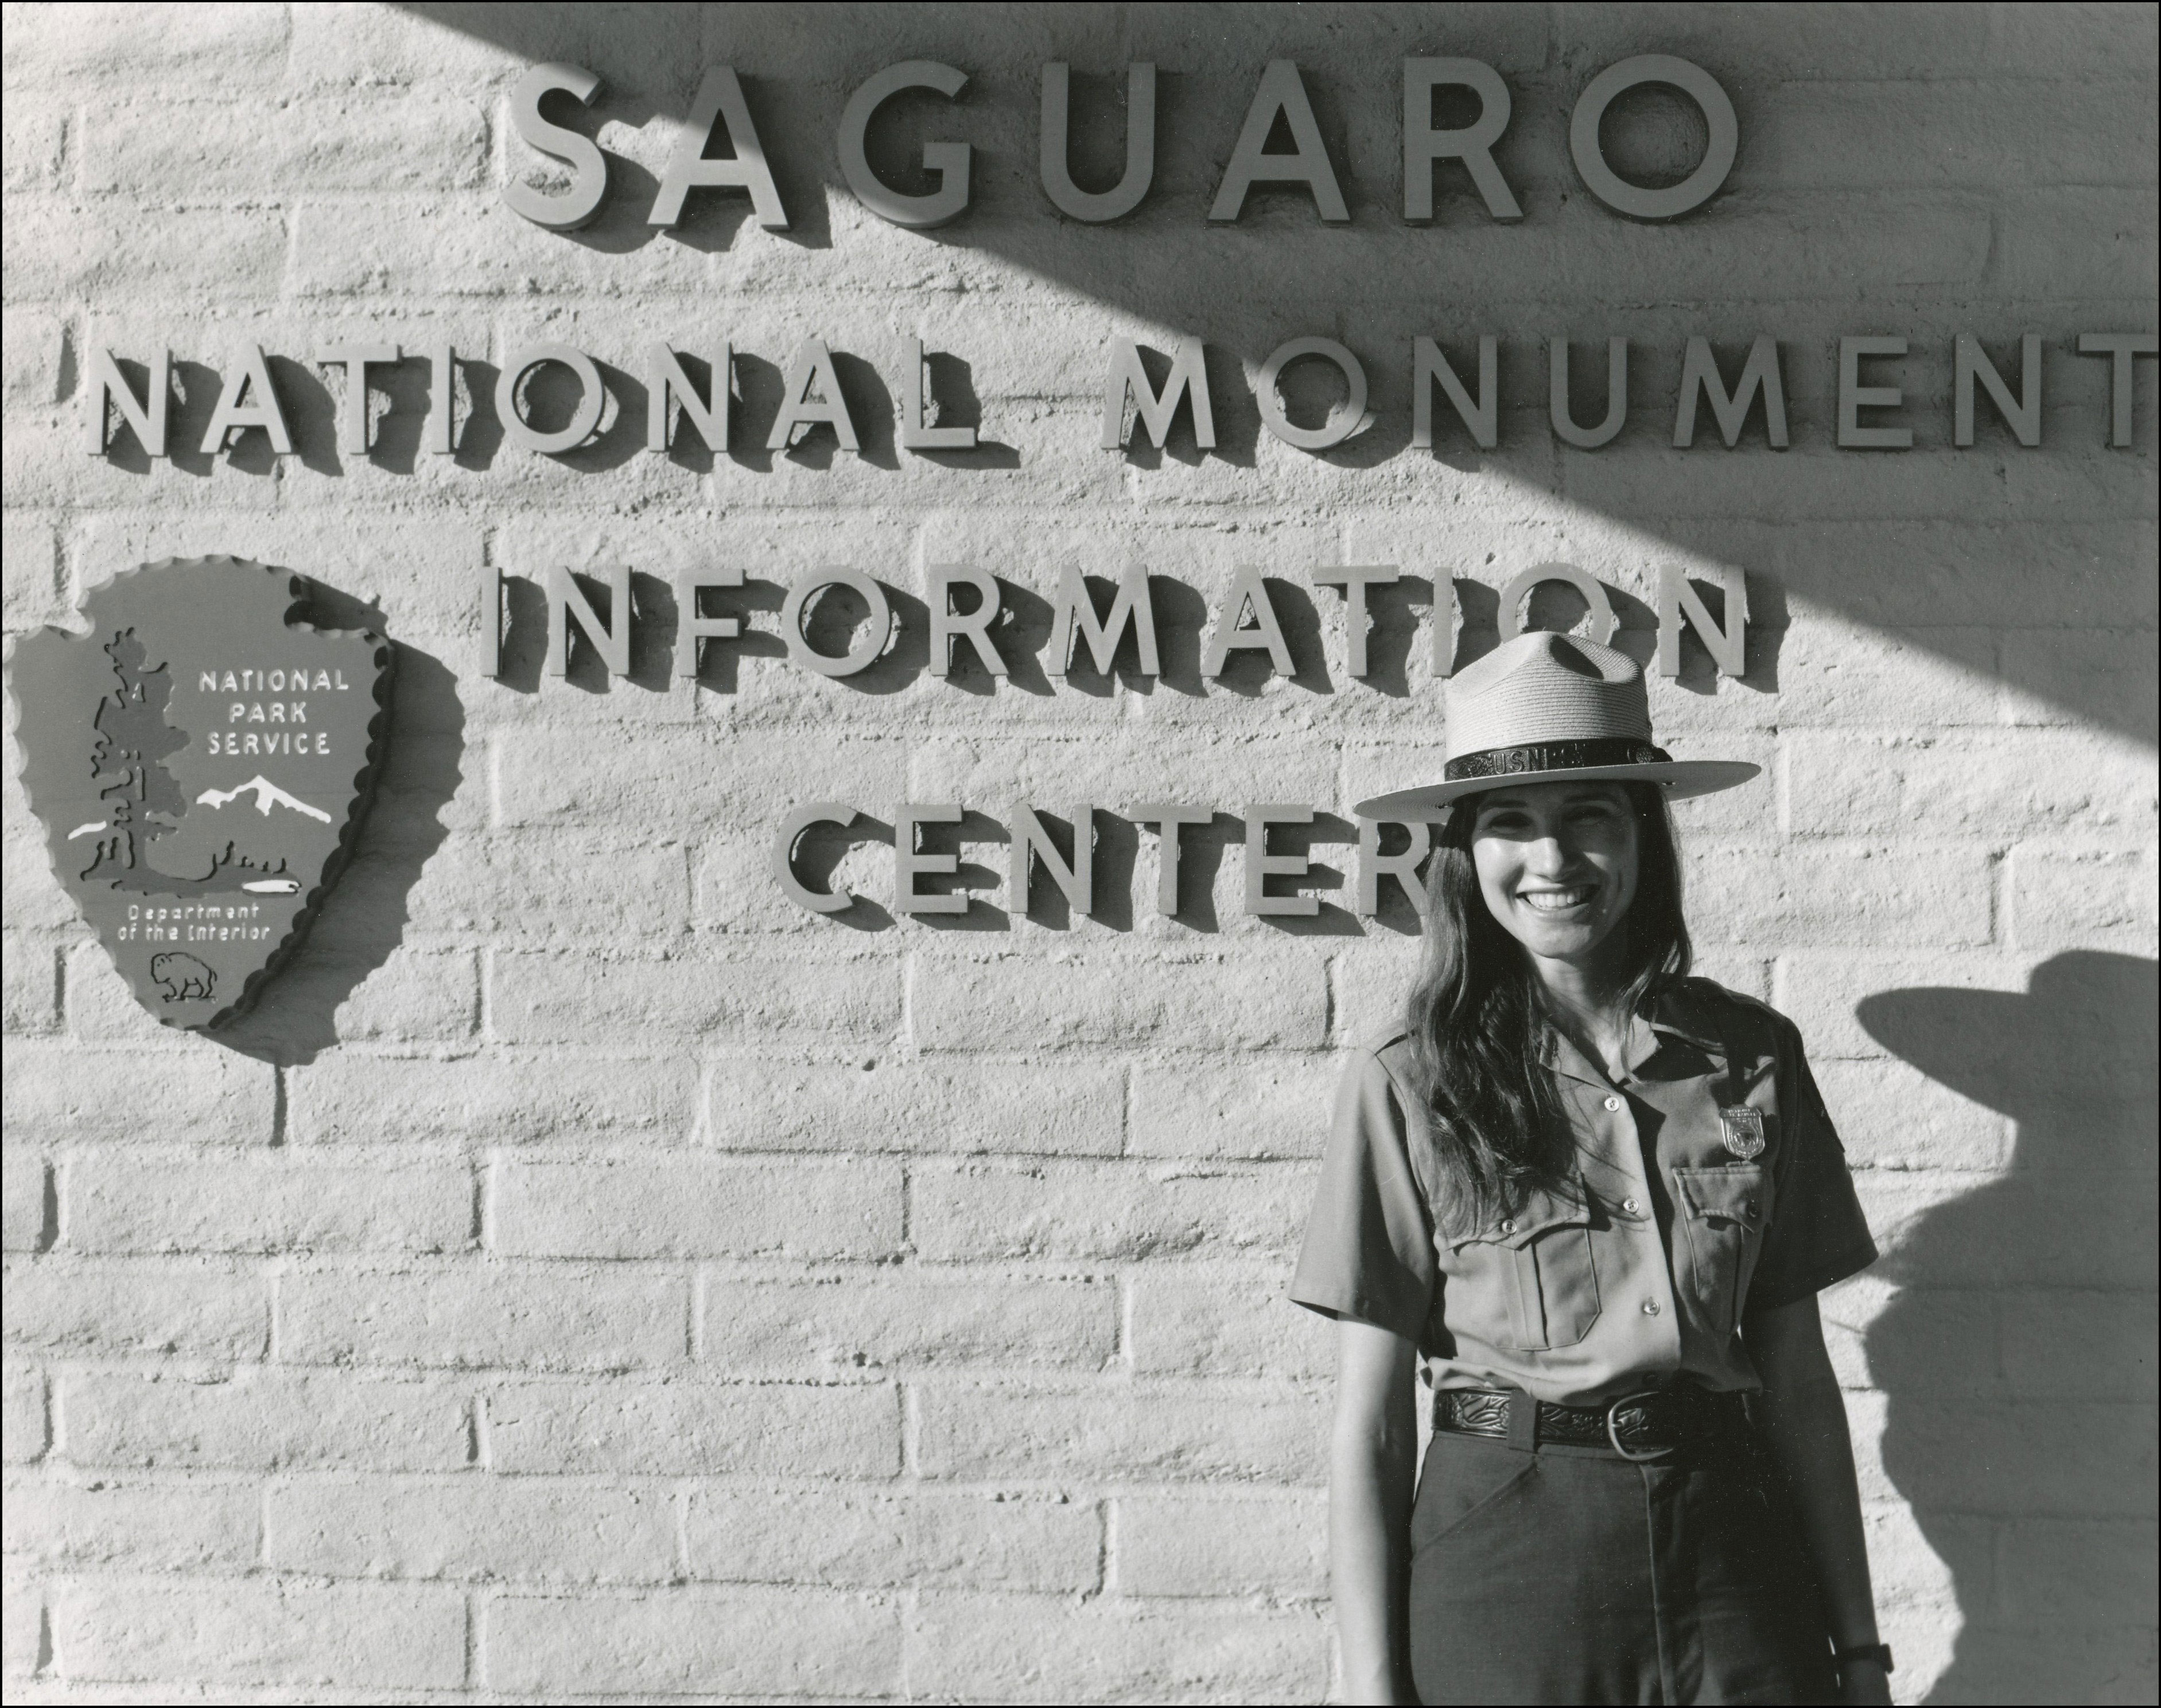 Woman Park ranger in uniform including hat standing in front of building with Naitonal Park Sign